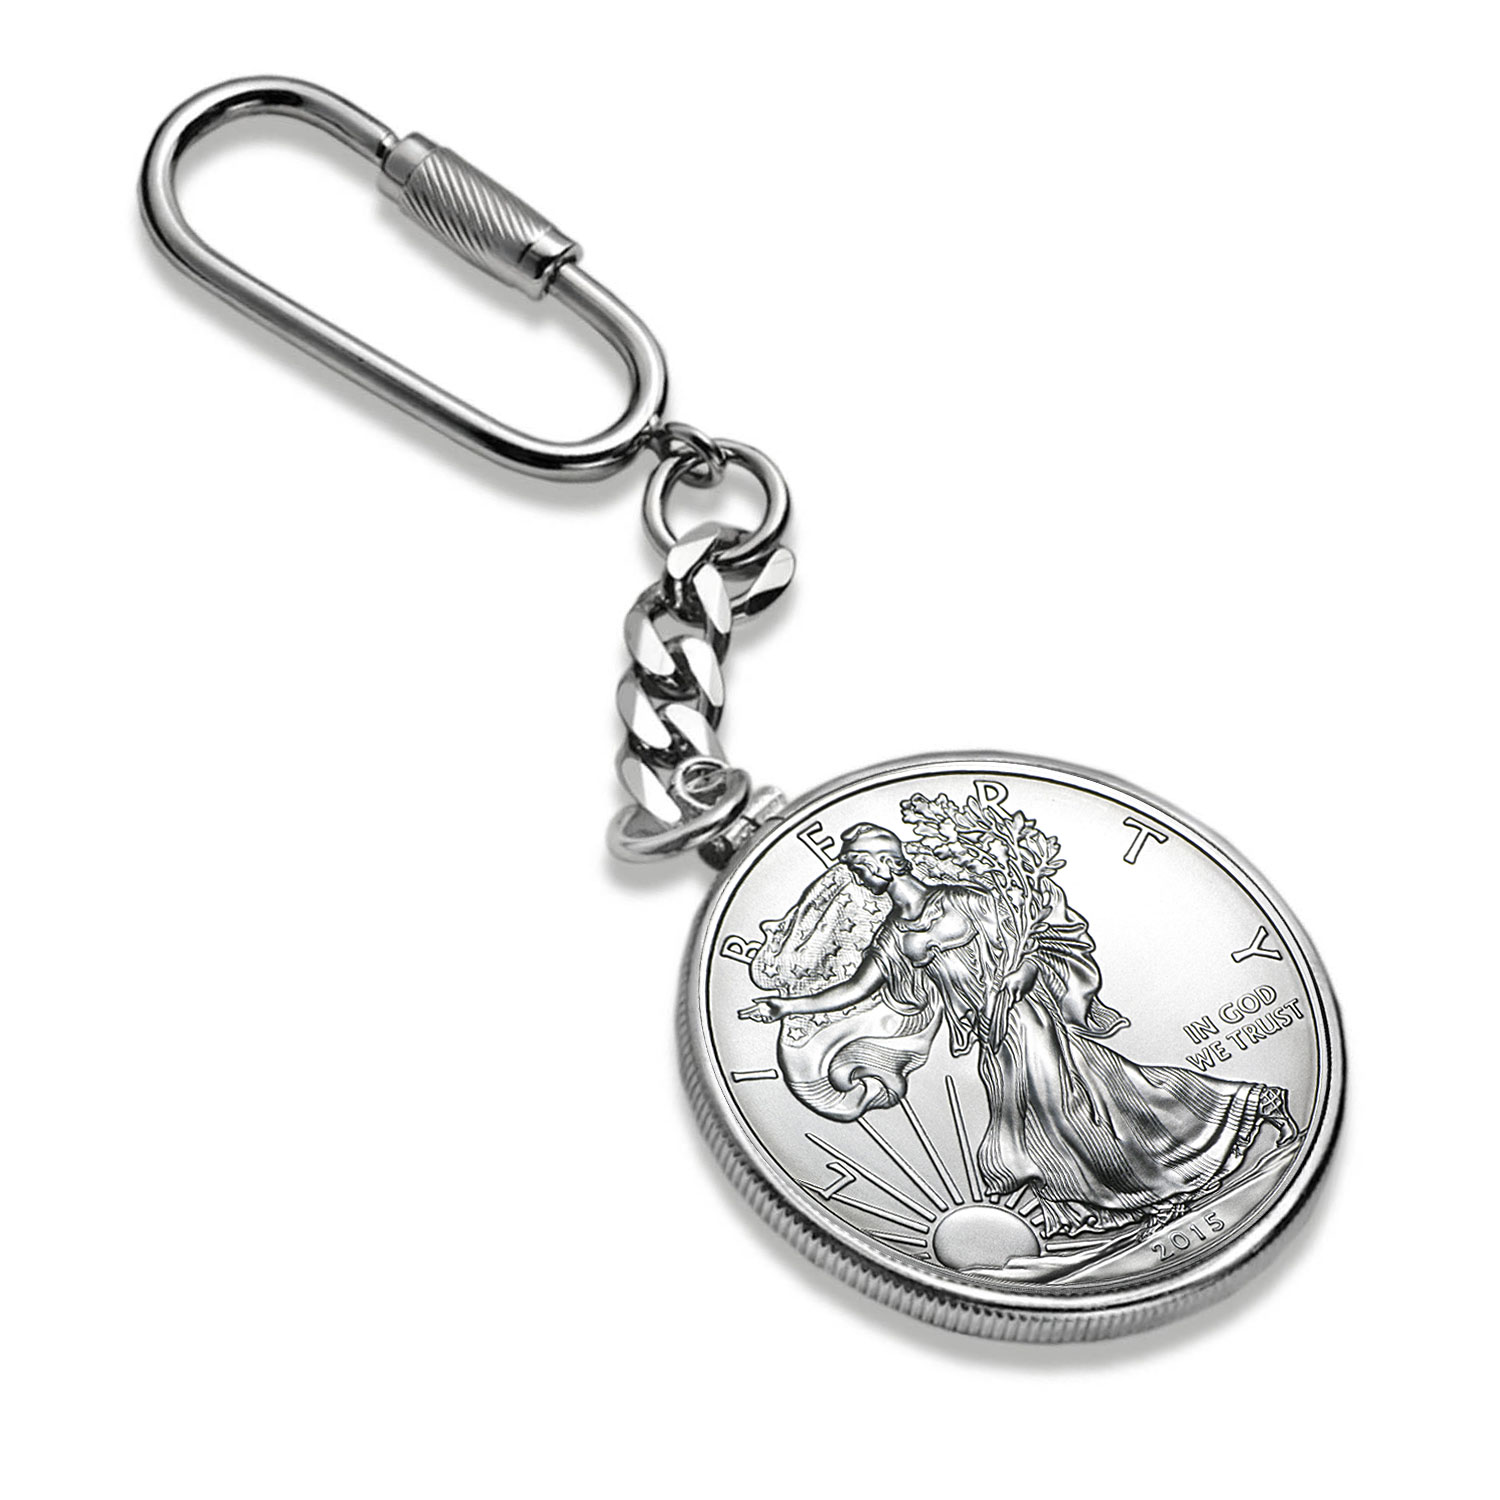 2015 1 oz Silver American Eagle Key Ring